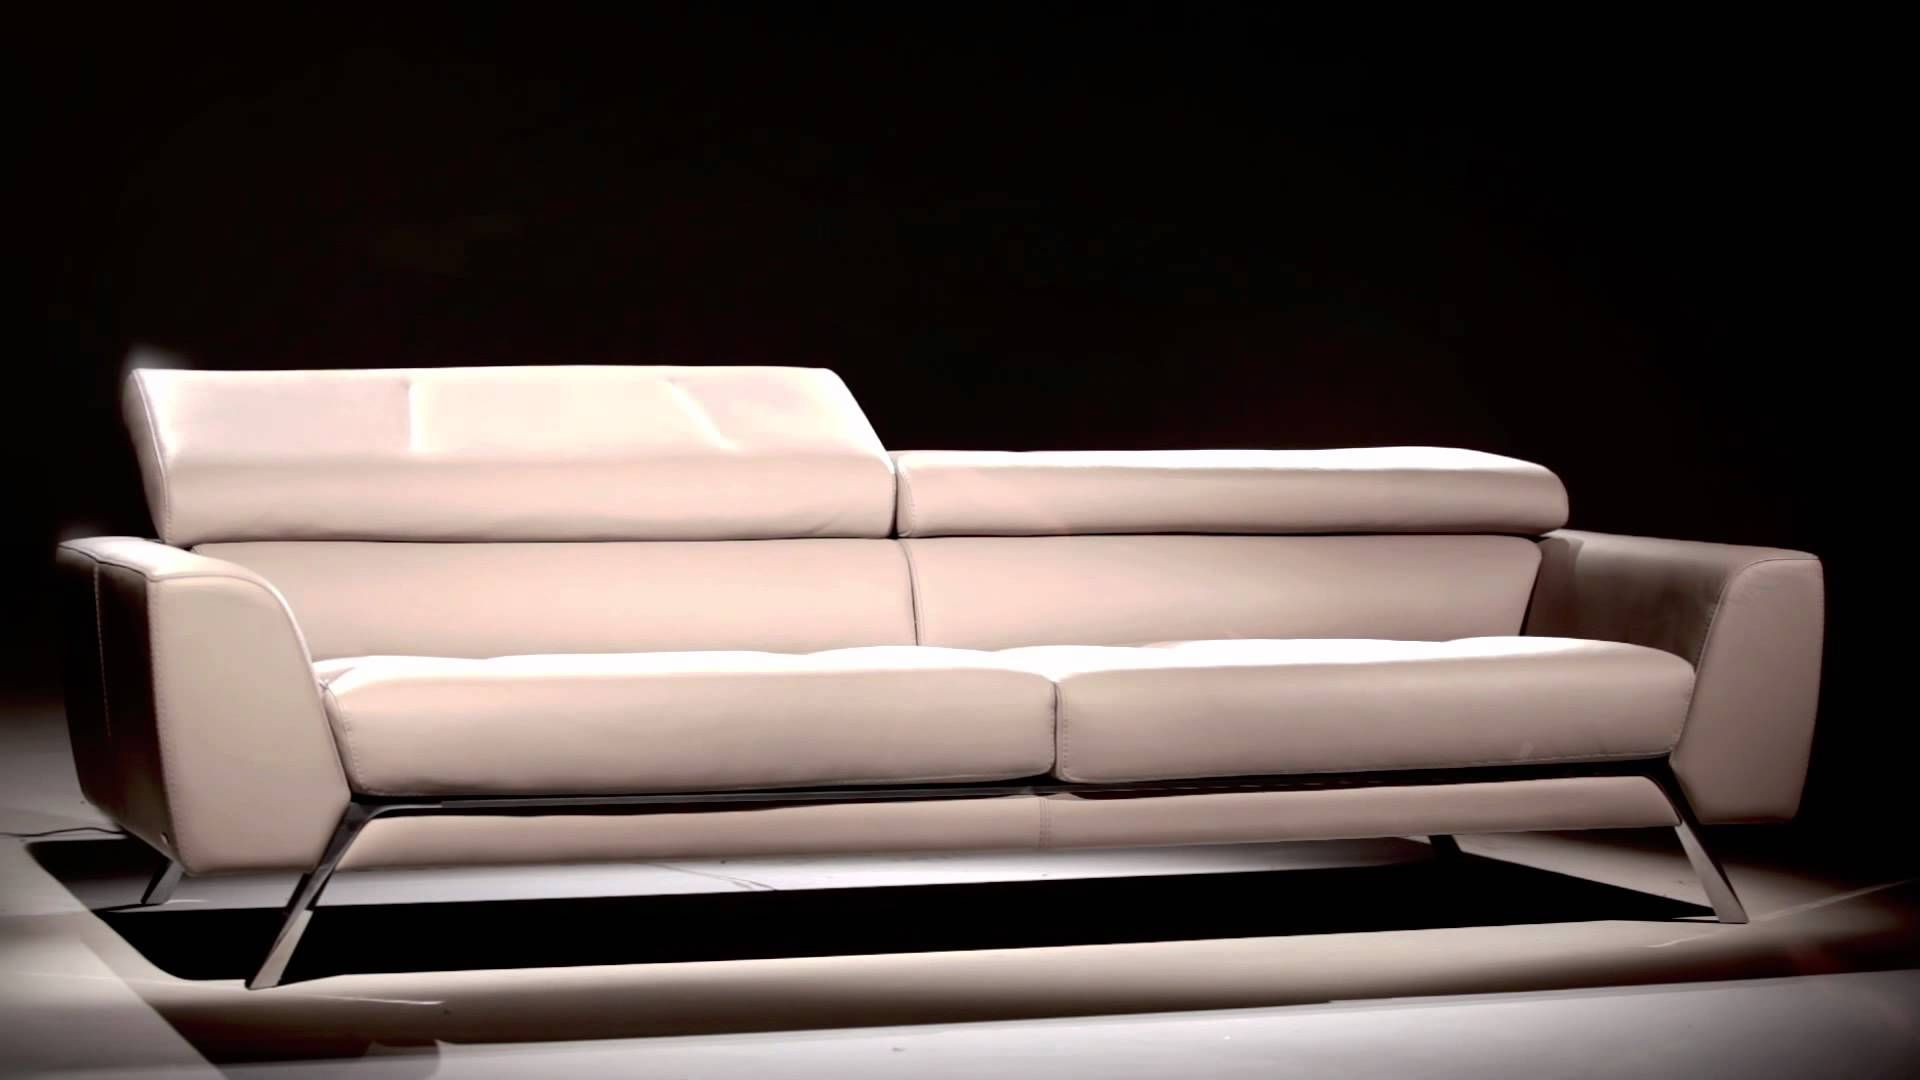 Cirrus Sofa Designed By Sacha Lakic For Roche Bobois 2012 More  # Canape Cinema Roche Bobois